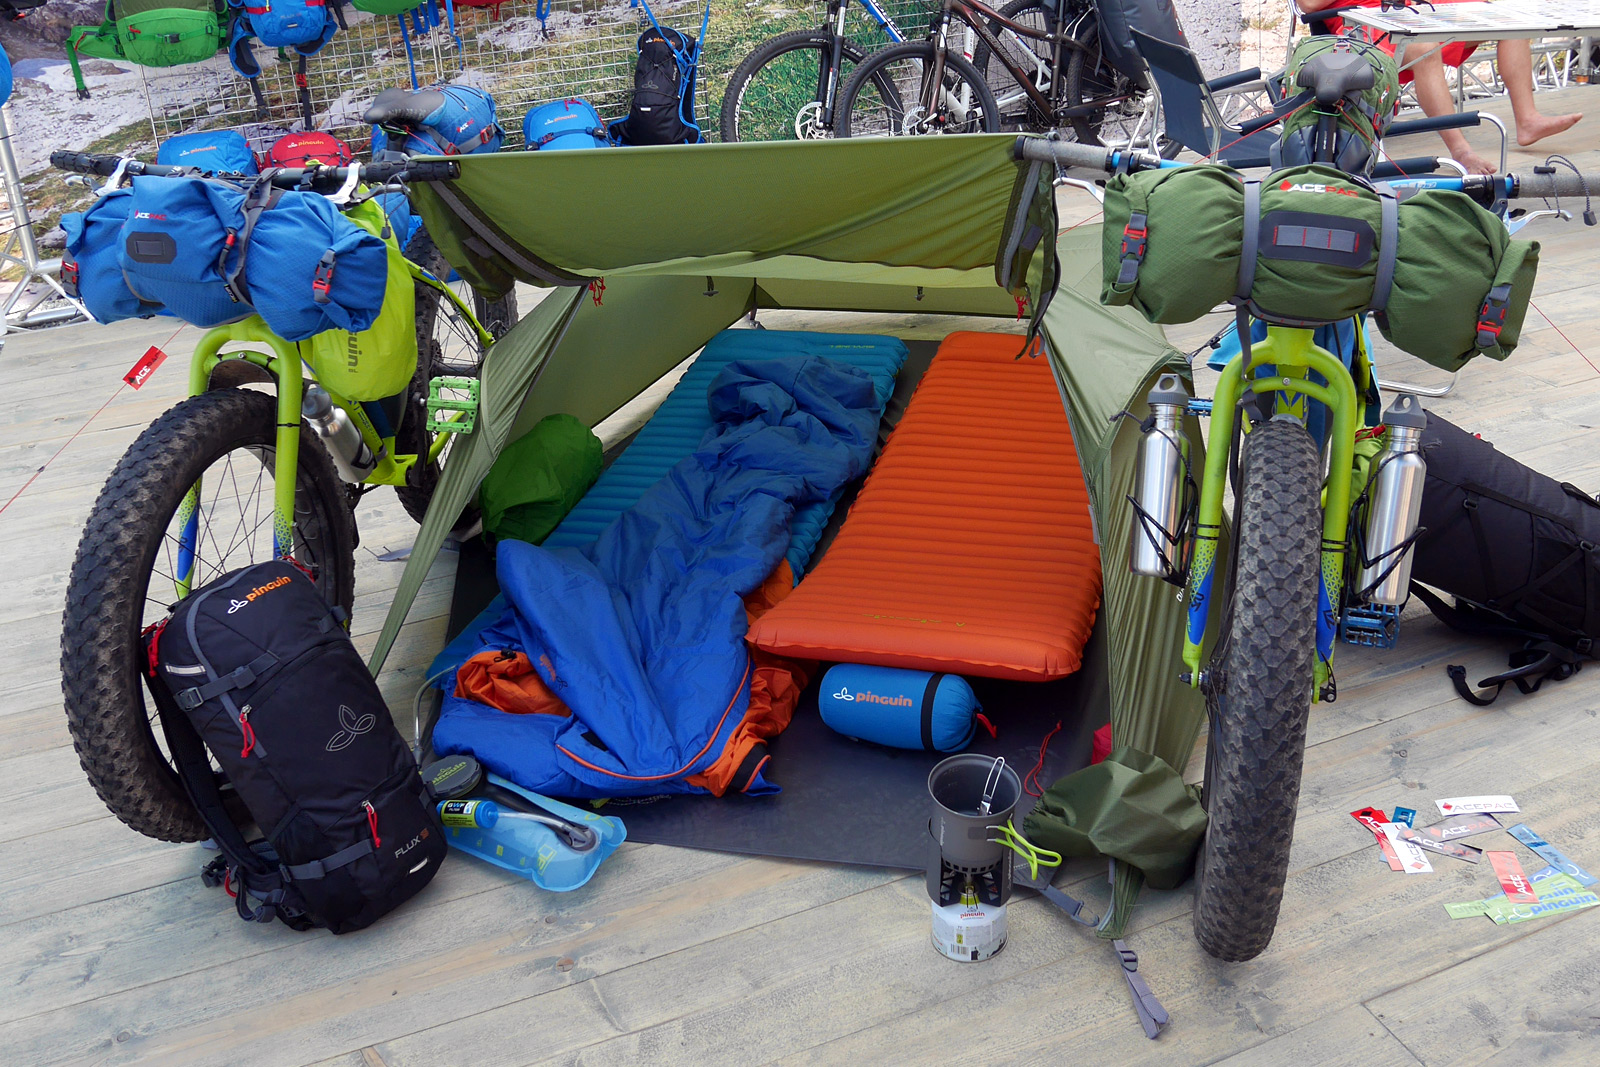 Pinguin-Outdoor_bike-camping-gear_AcePac-bike-bags_bivuac-tent-setup.jpg